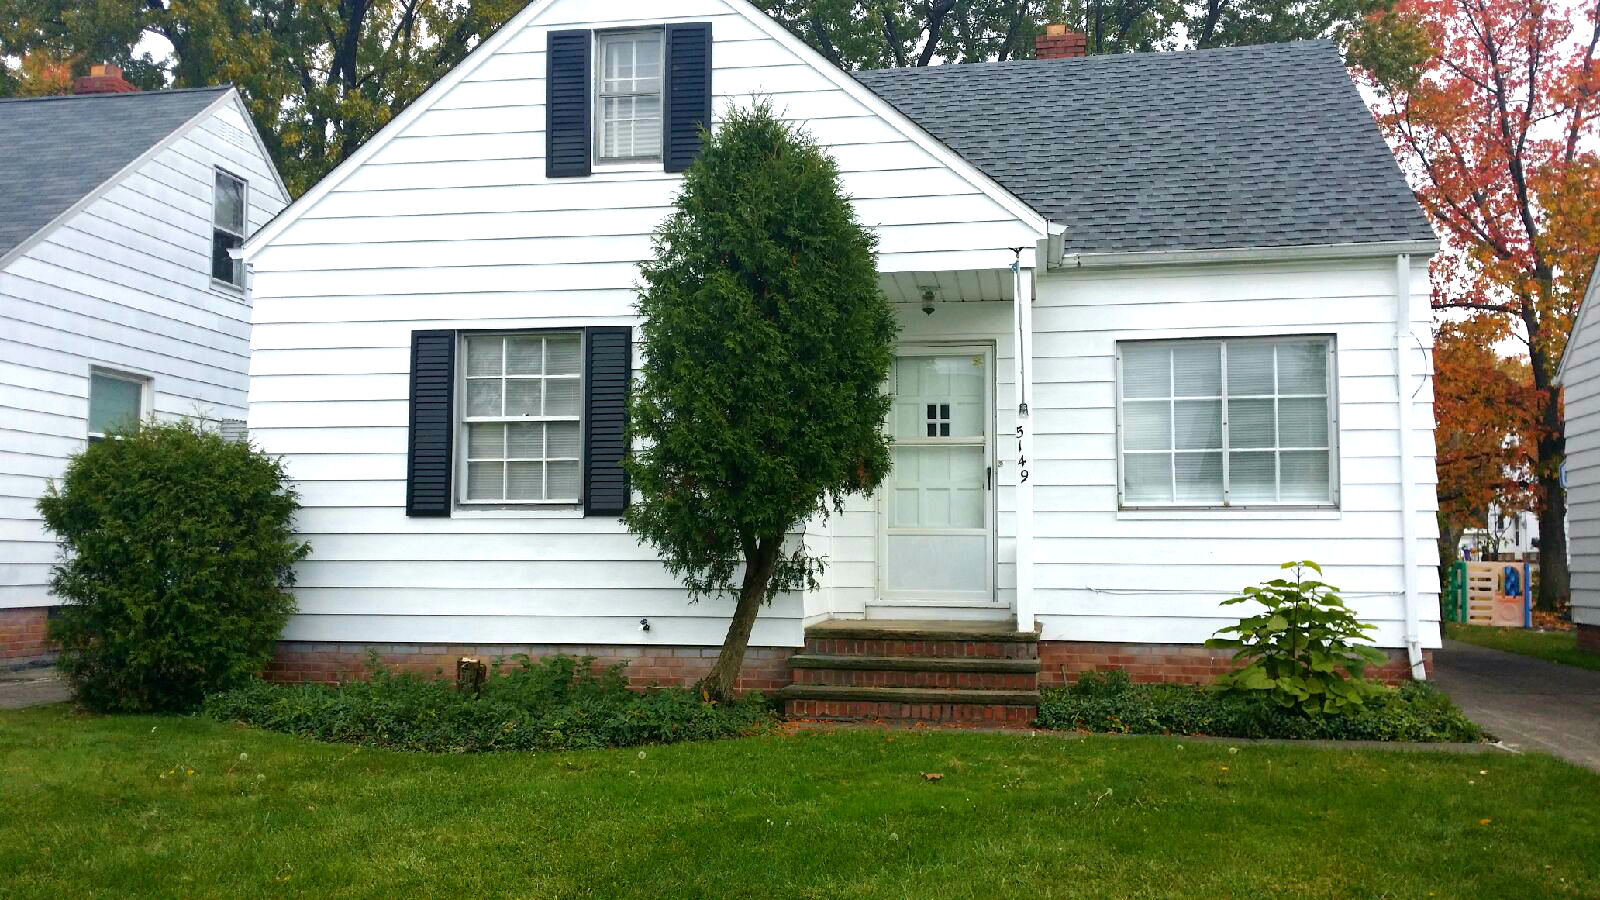 5149 Clement Ave., Maple Hts. | 3 bed 1 bath | 1,128 Sq. Ft. | $52,000